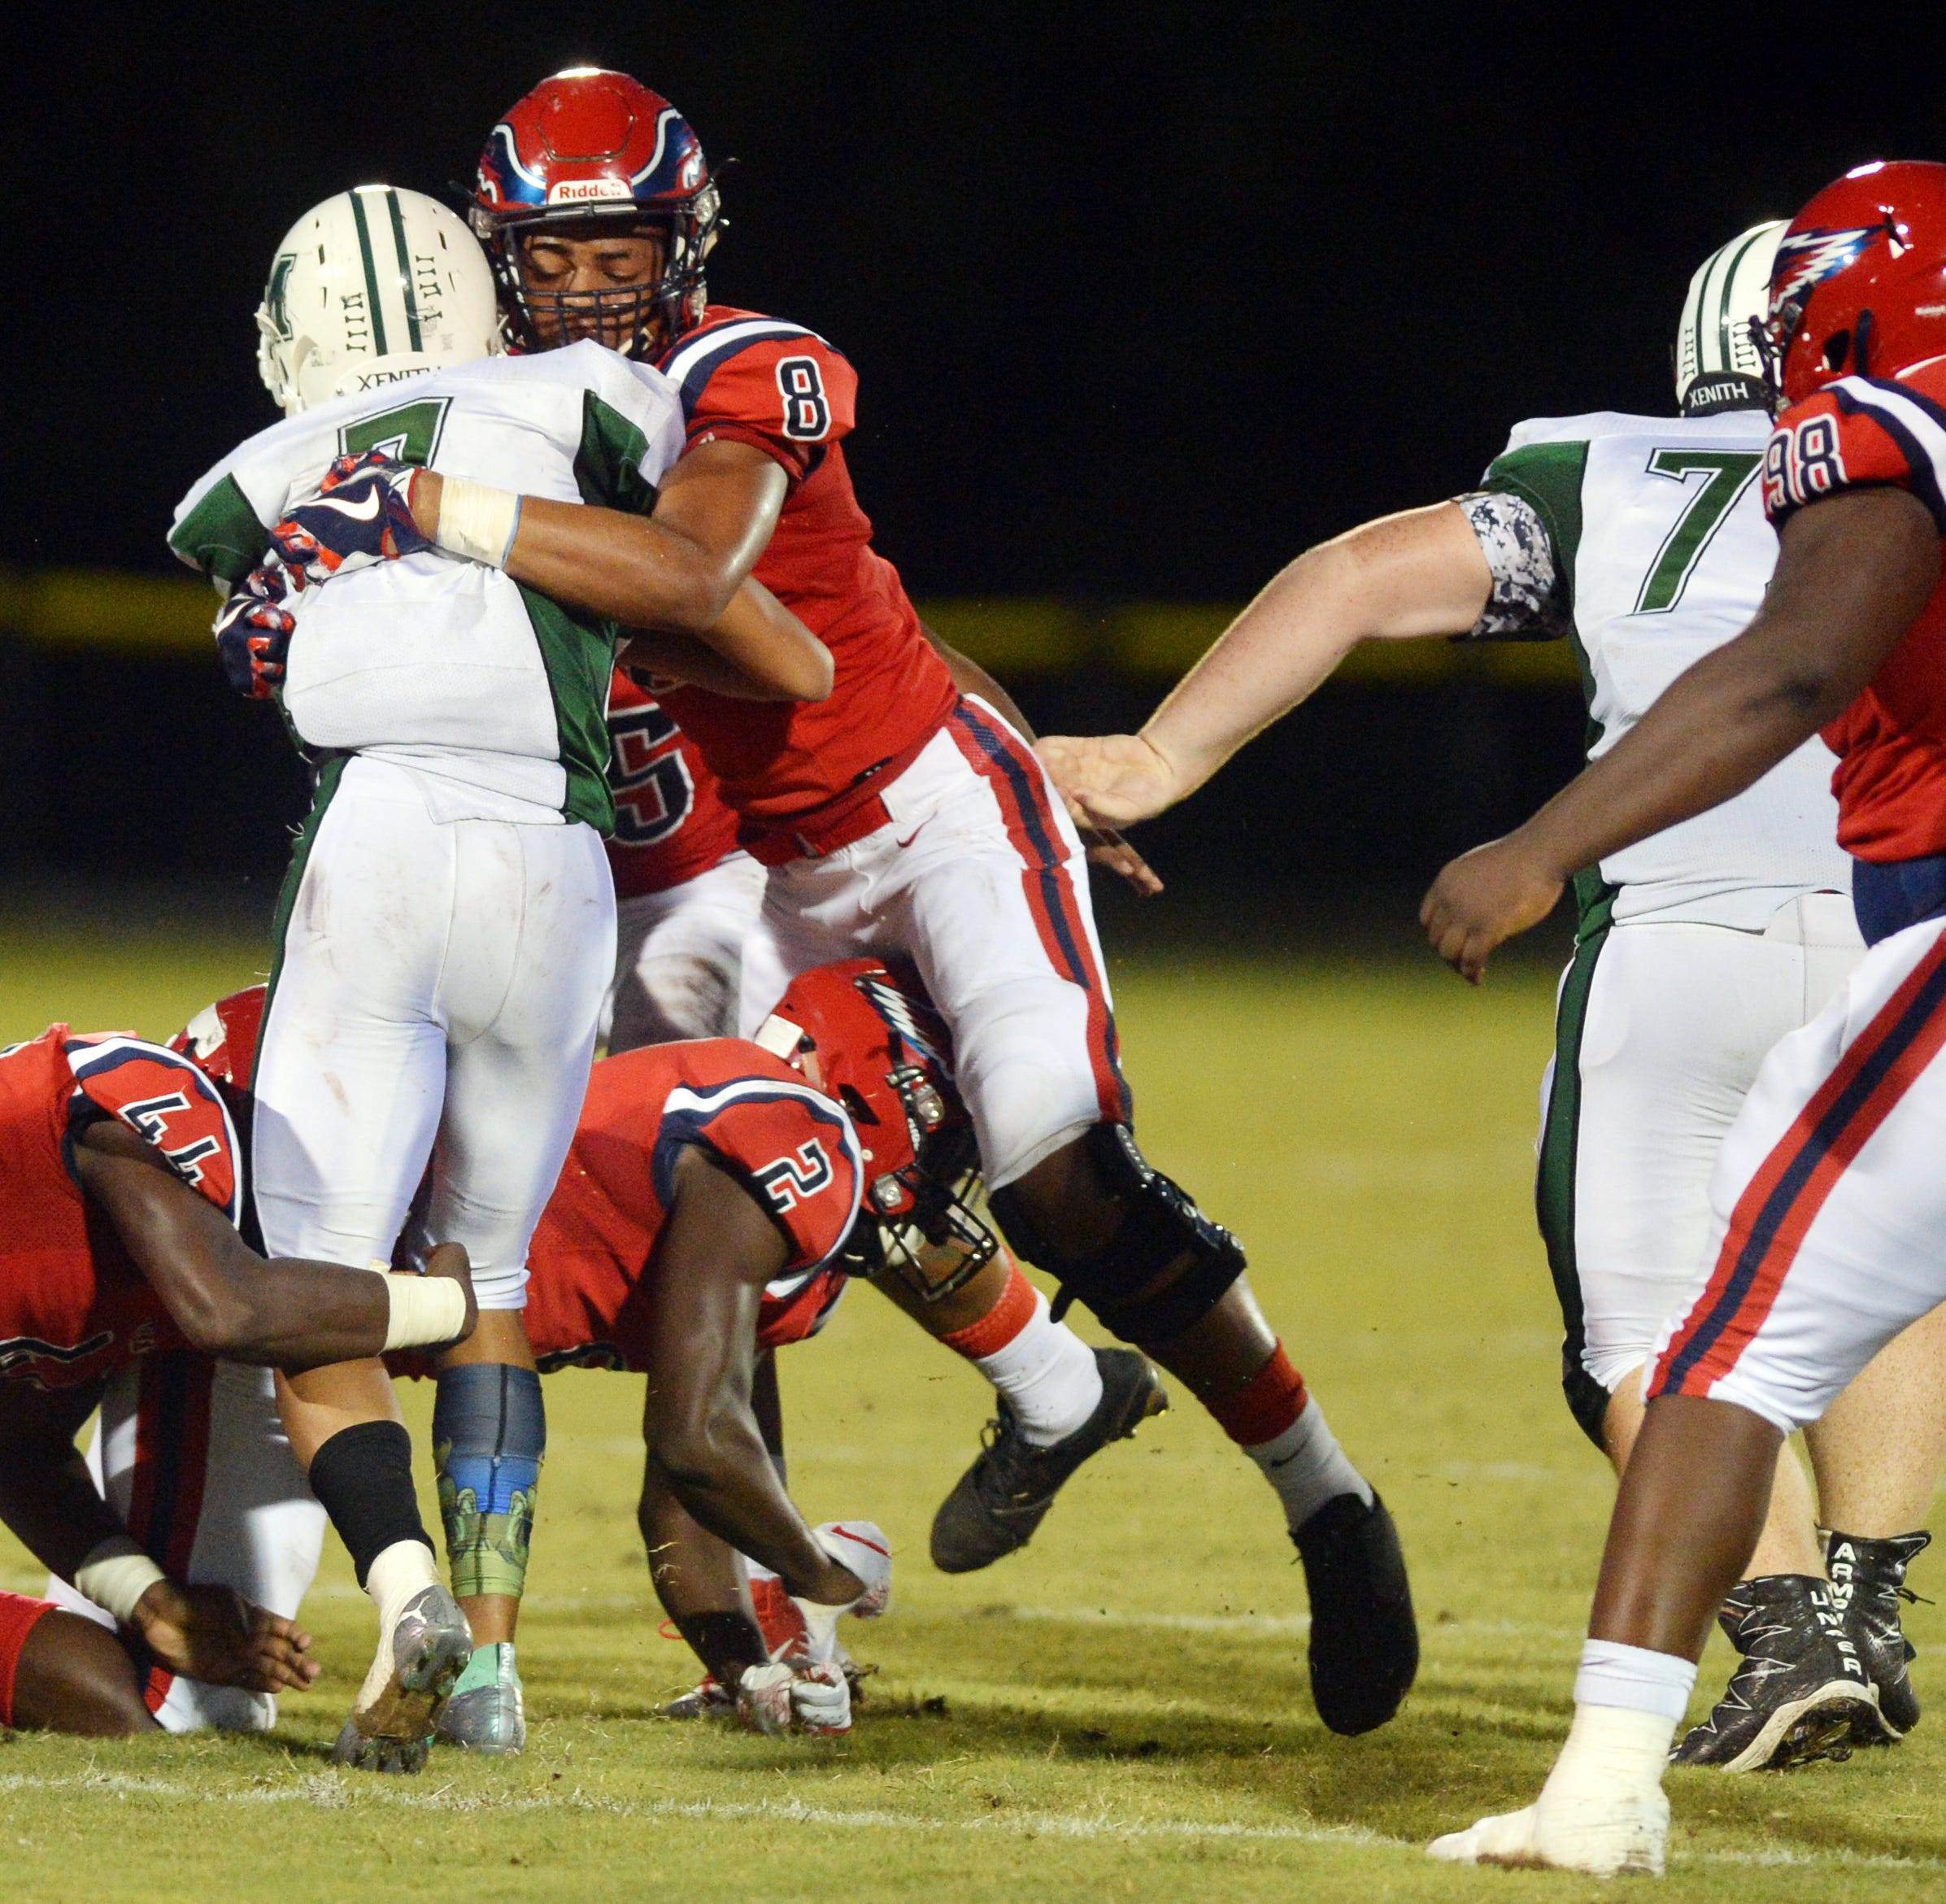 Week 4 roundup: Centennial, Vero Beach breeze to 4-0 starts